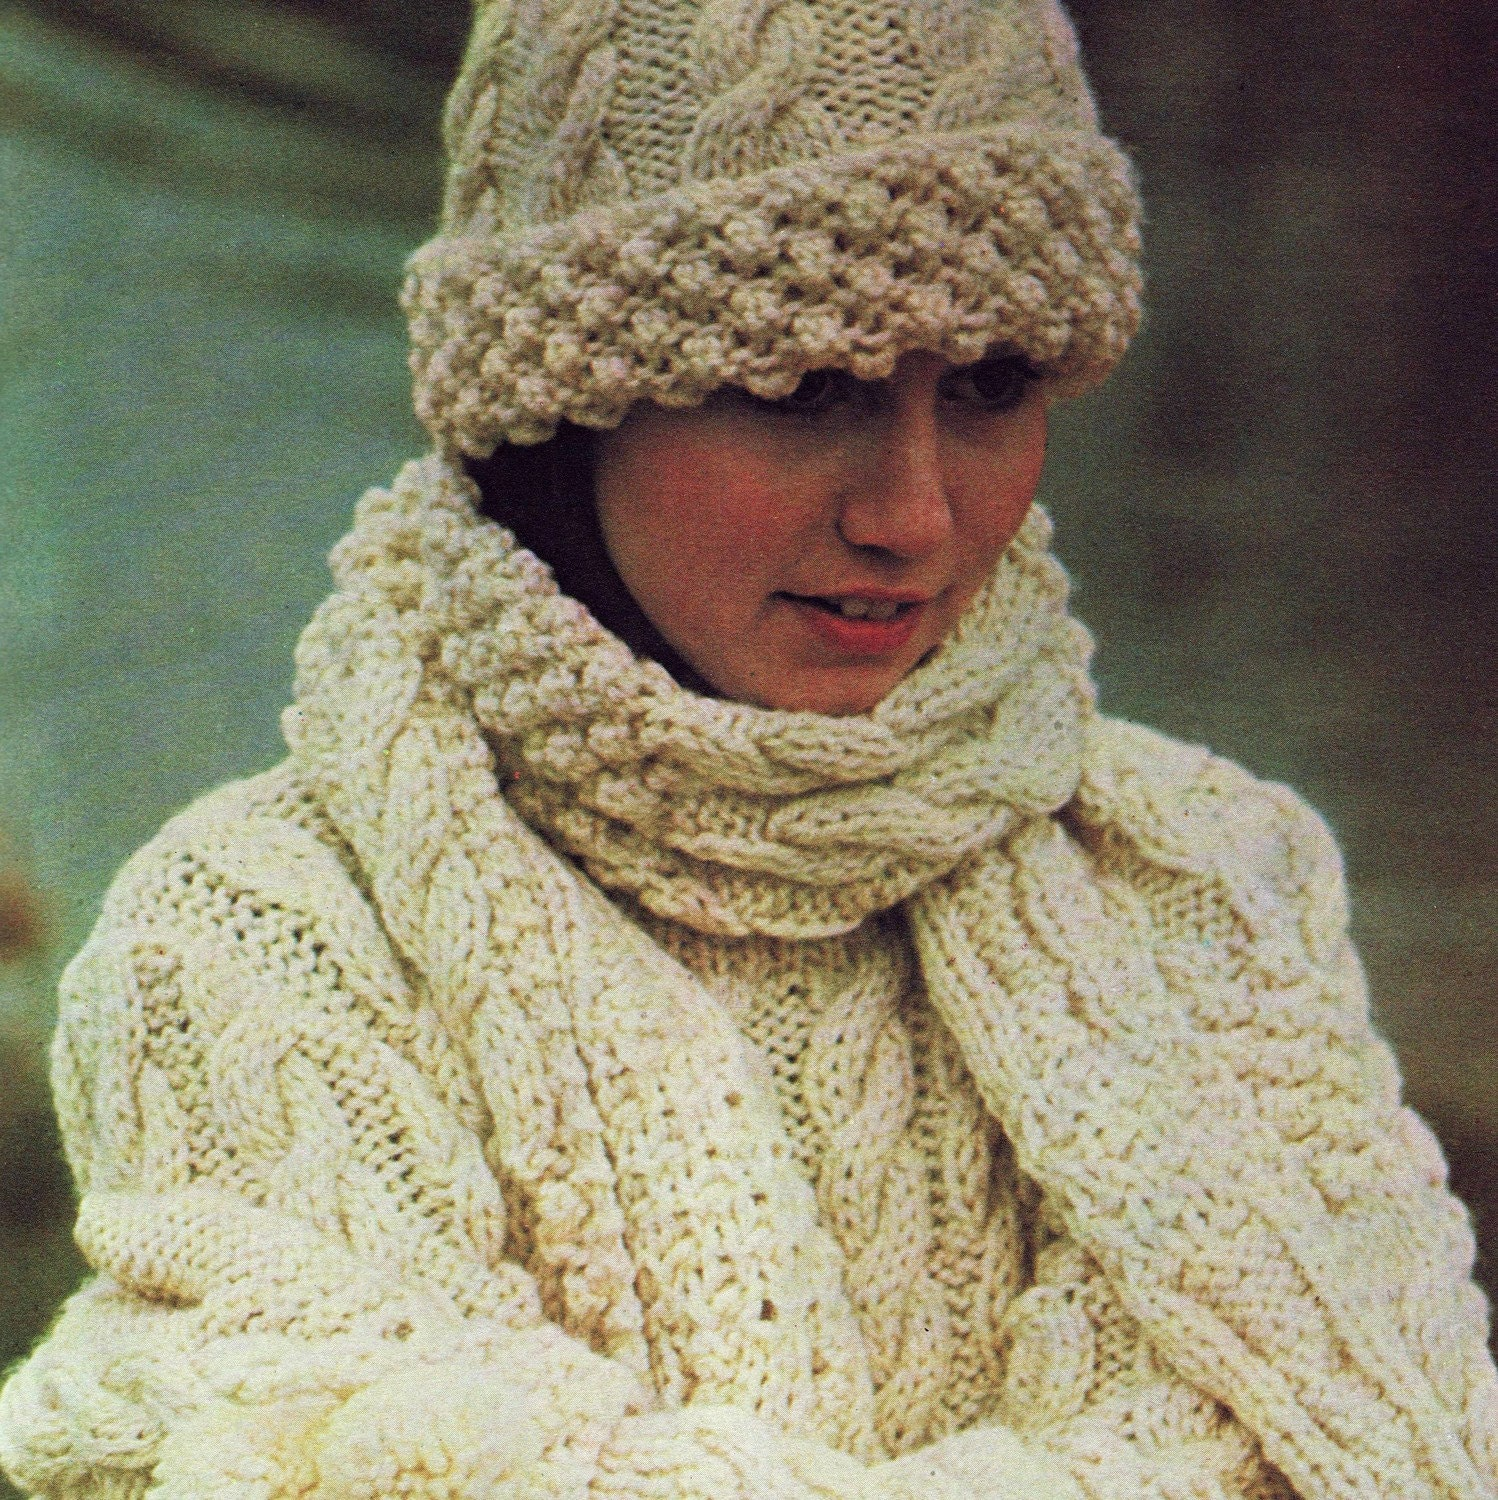 Vintage Knitting Pattern PDF Aran Sweater Hat Scarf and Gloves Cable Cable Knit Scarf And Hat Pattern